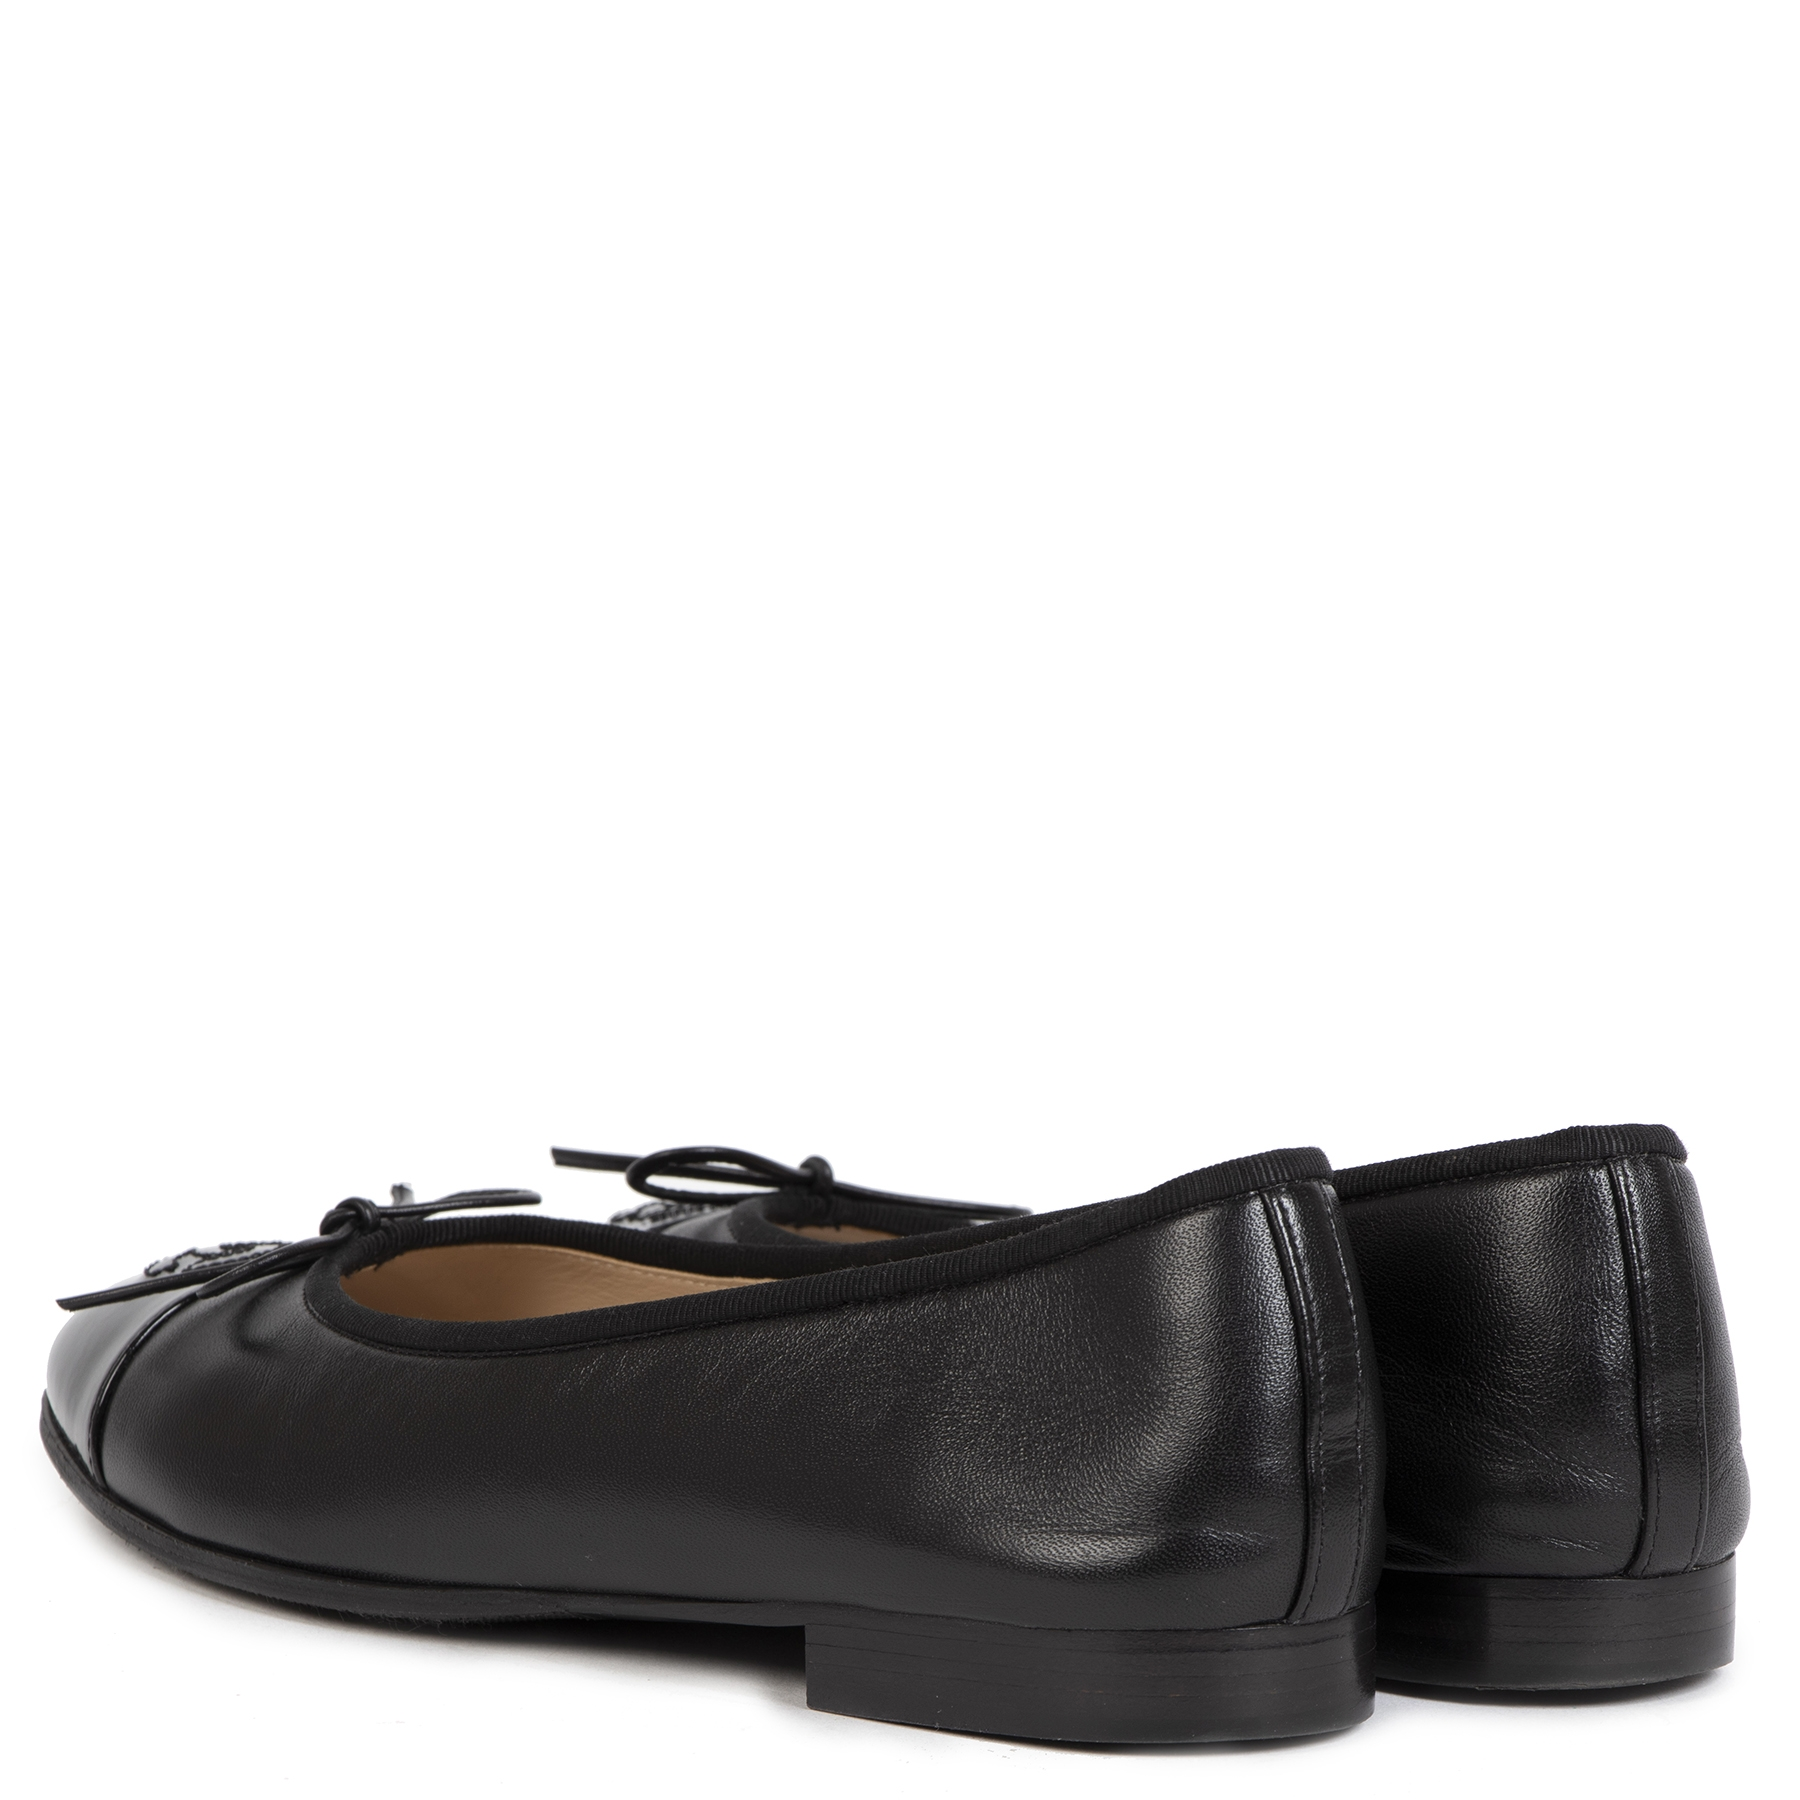 Buy authentic secondhand Chanel Black Flats - Size: 35,5 at the right price safe and secure online webshop LabelLOV luxury brand shop LabelLOV Antwerp Belgium